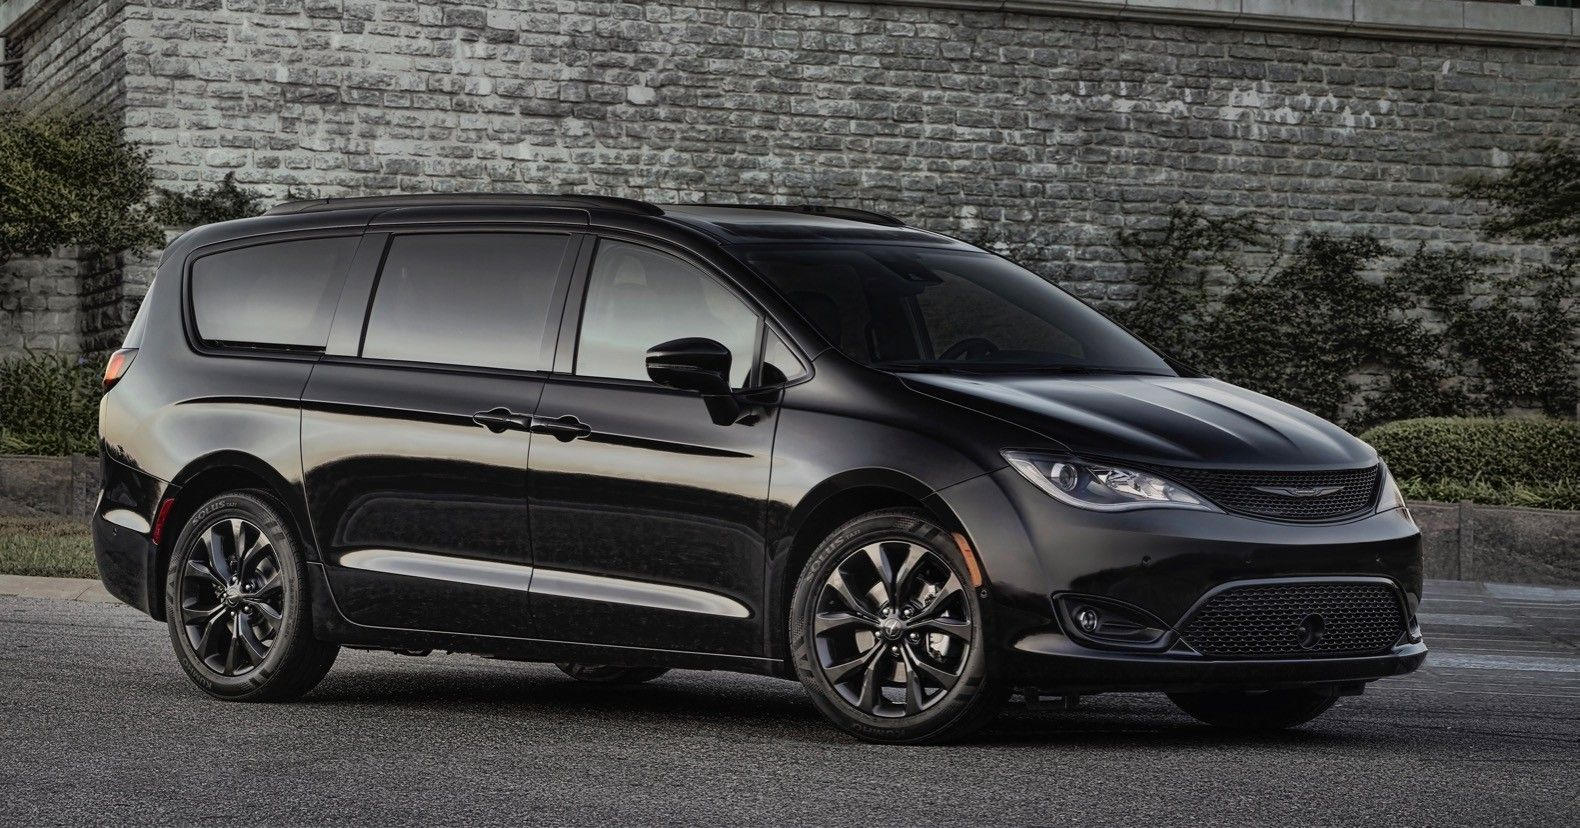 The 2019 Chrysler Pacifica Exterior Chrysler Pacifica Chrysler